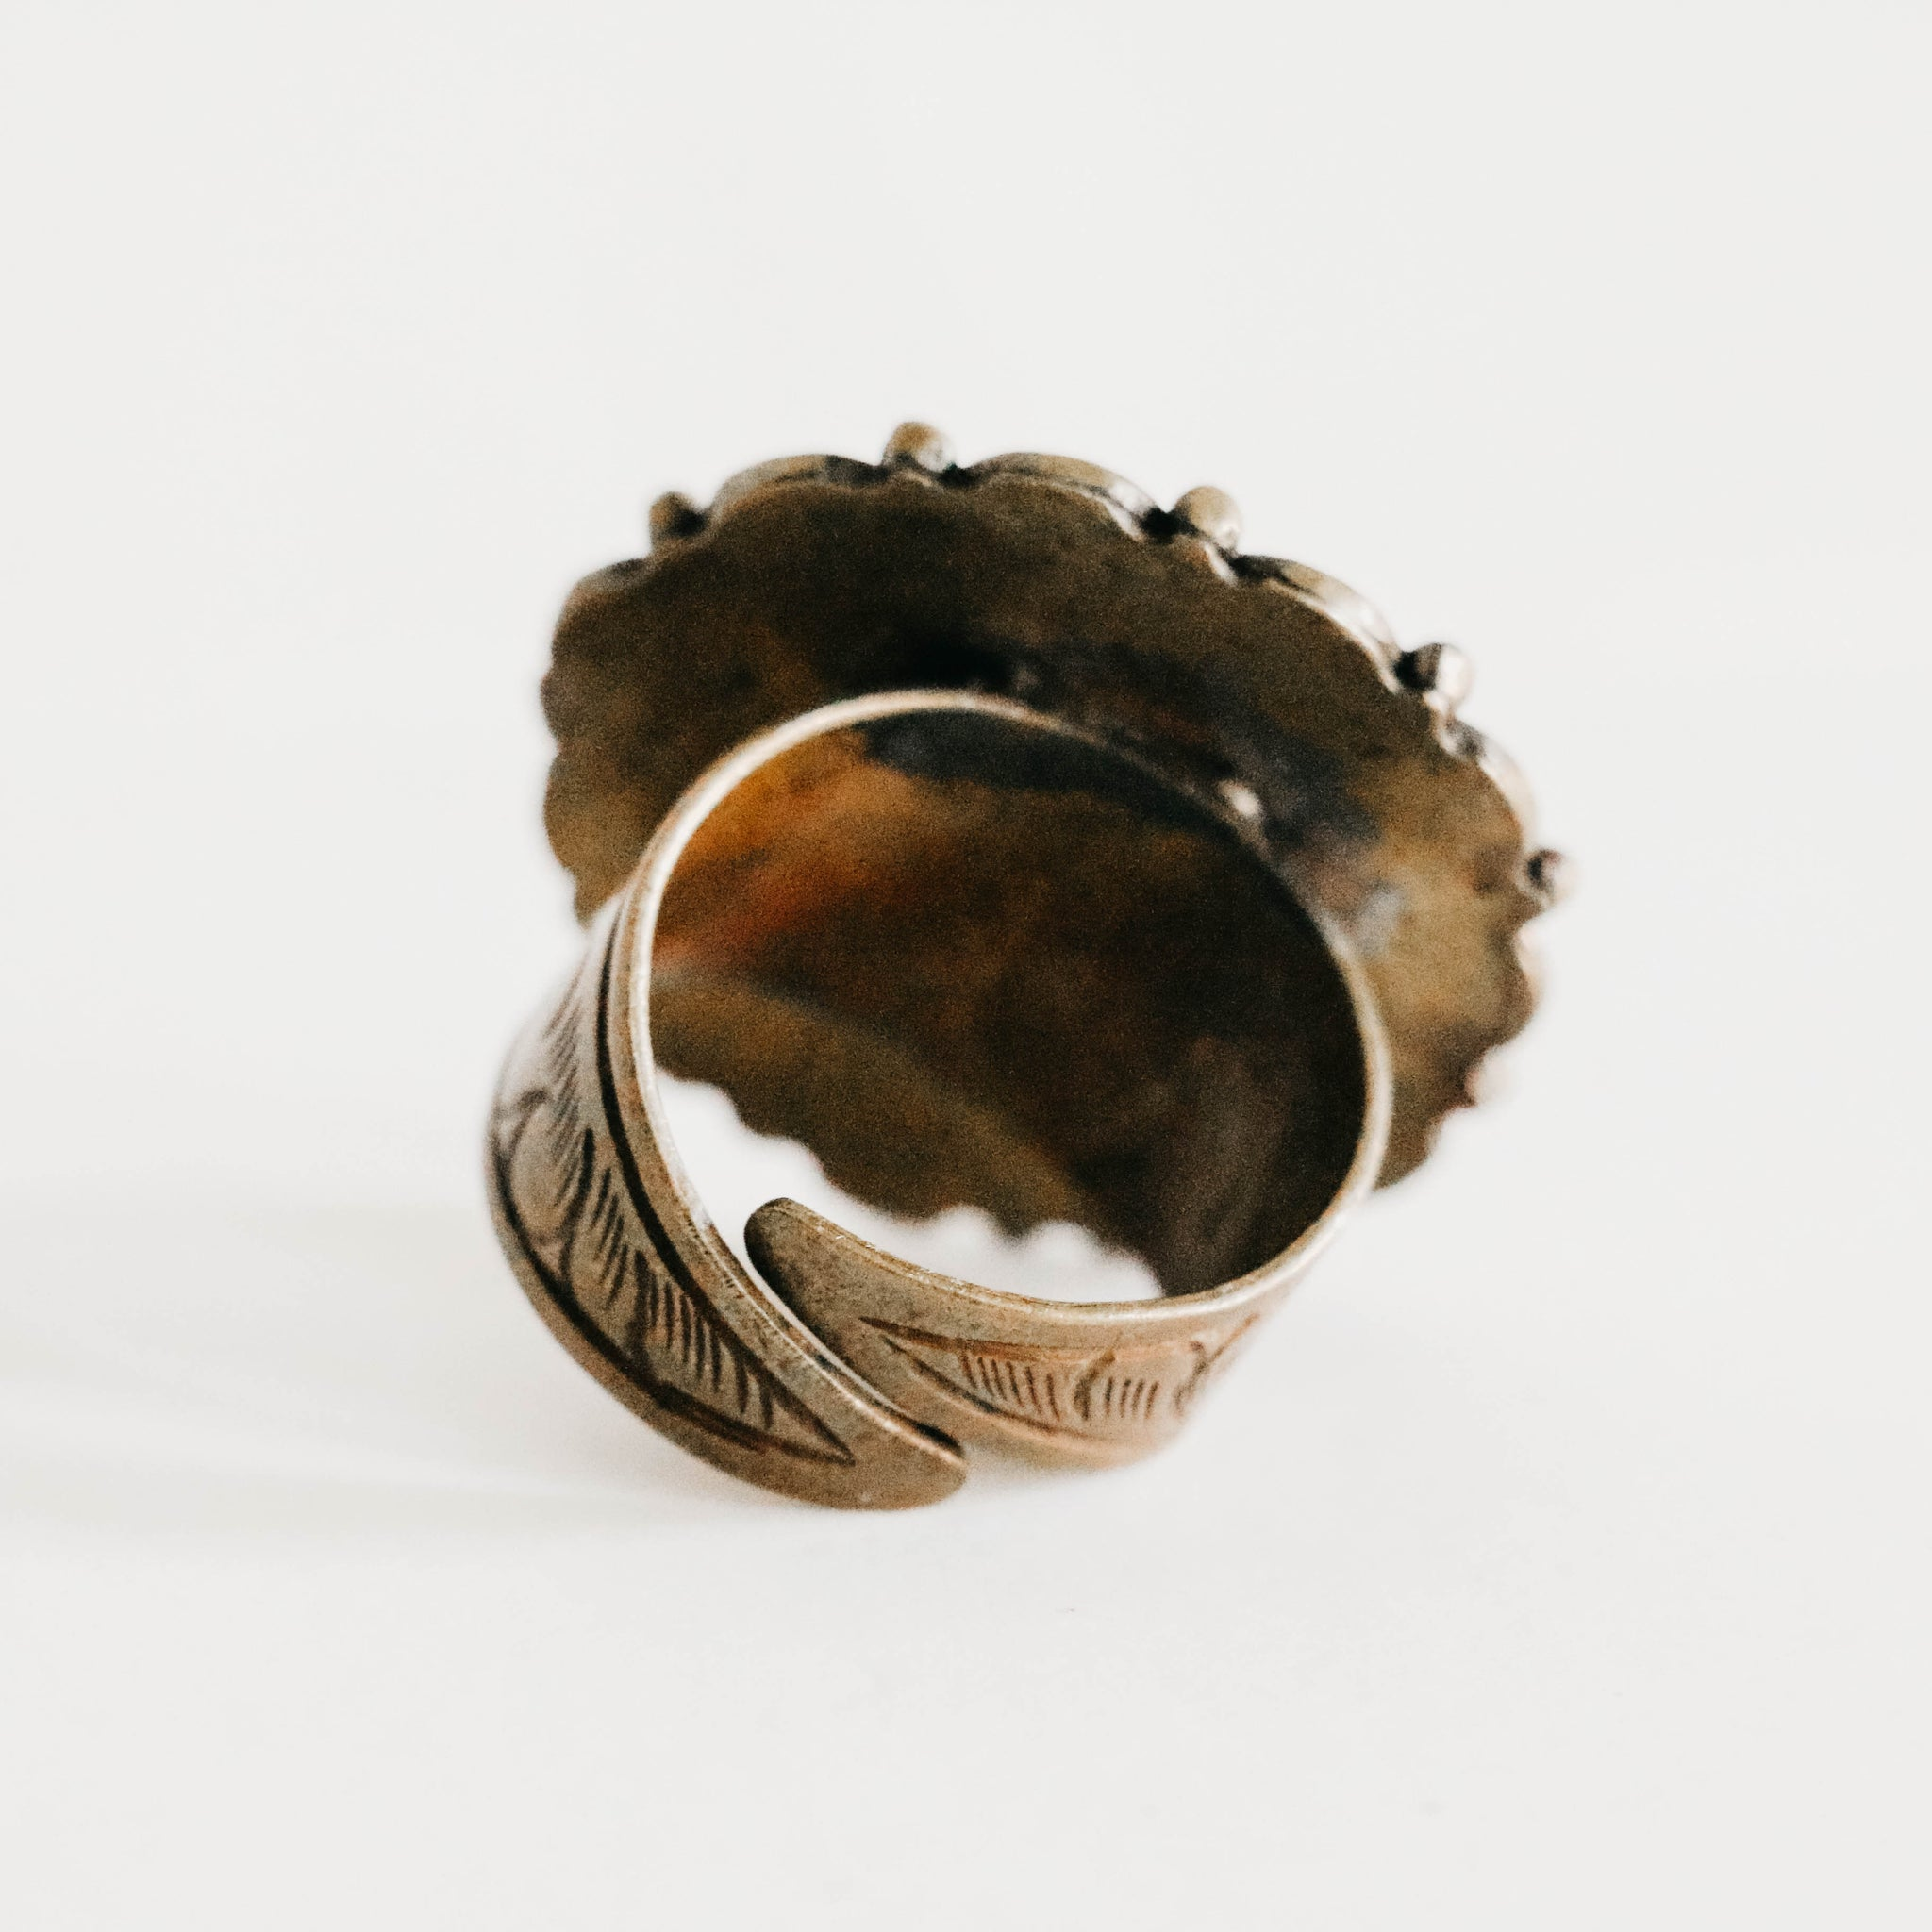 Polished Stone Ring